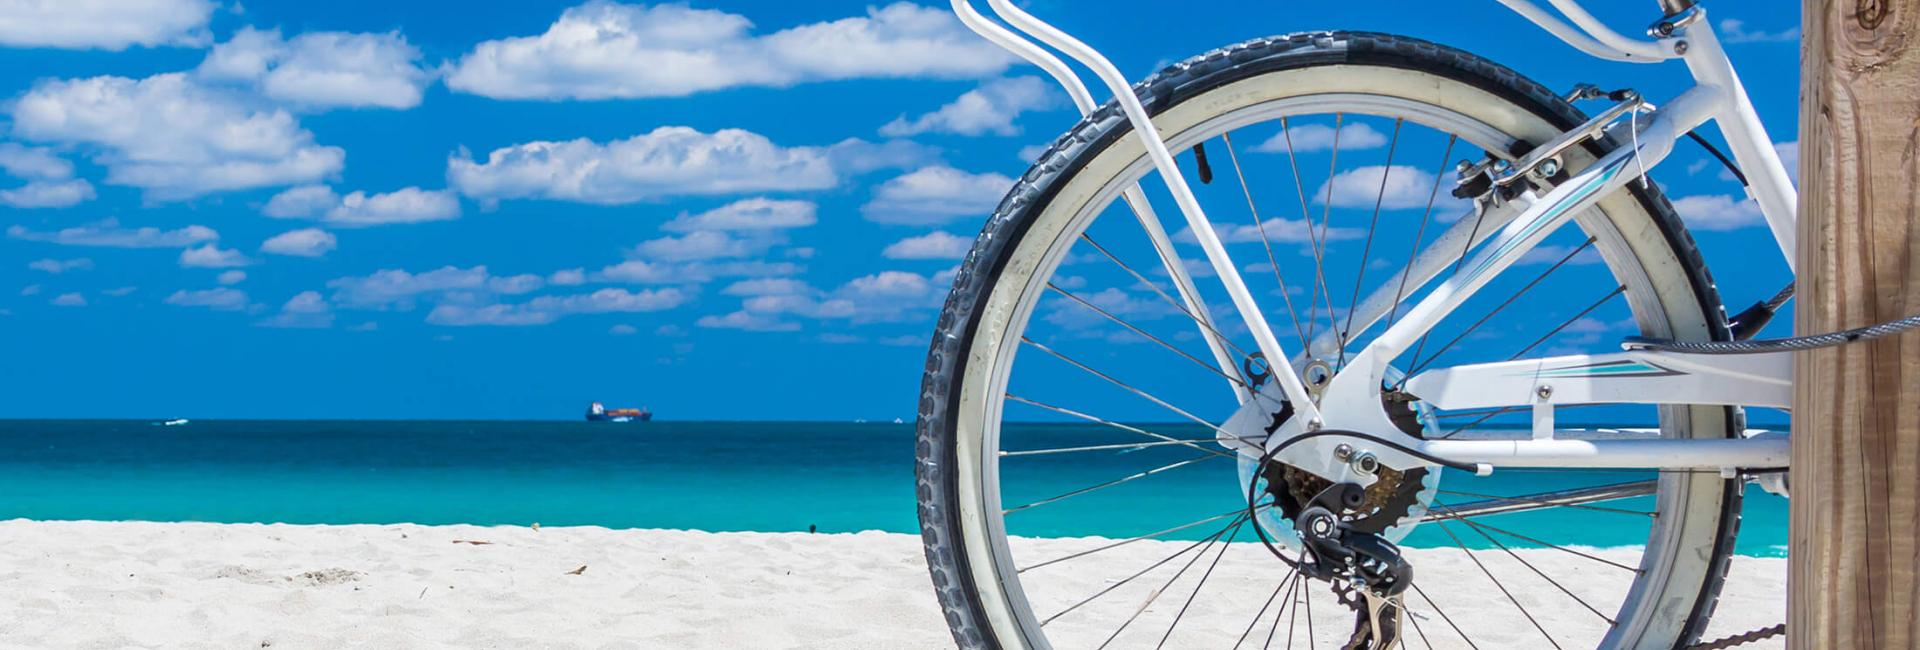 Bike parked at the beach